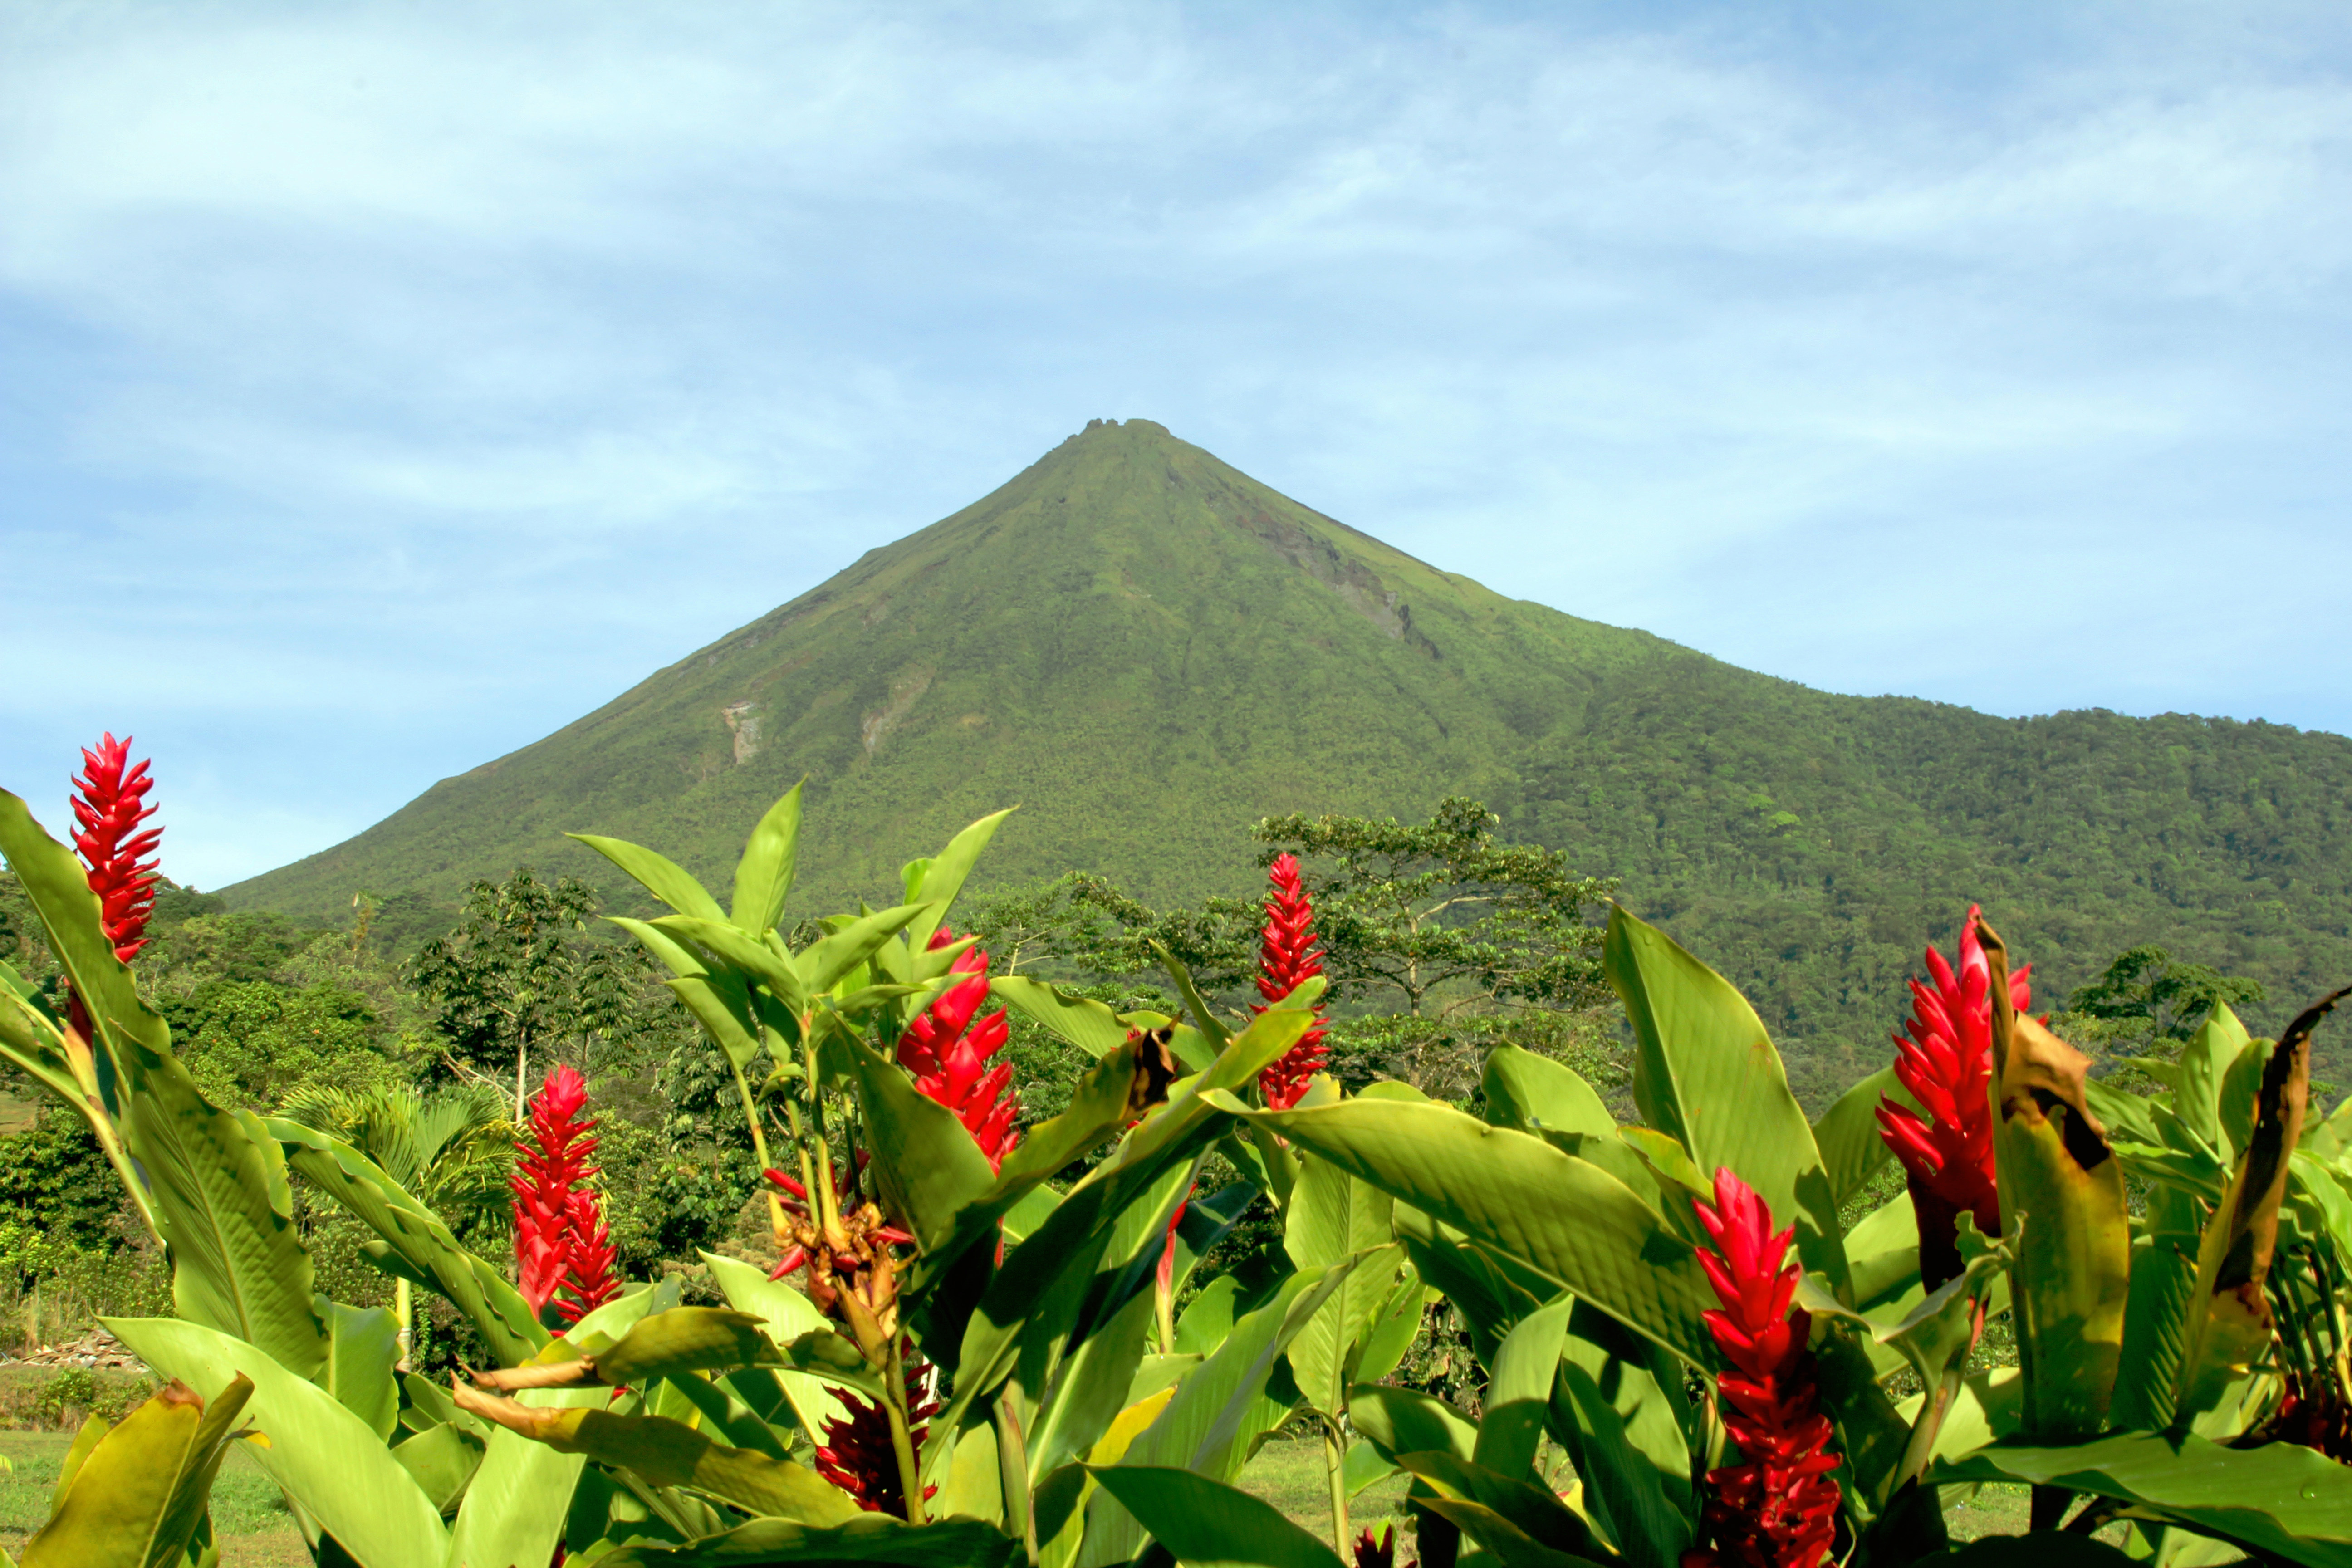 Red flowers and greenery with the Arenal Volcano in the background in Costa Rica.